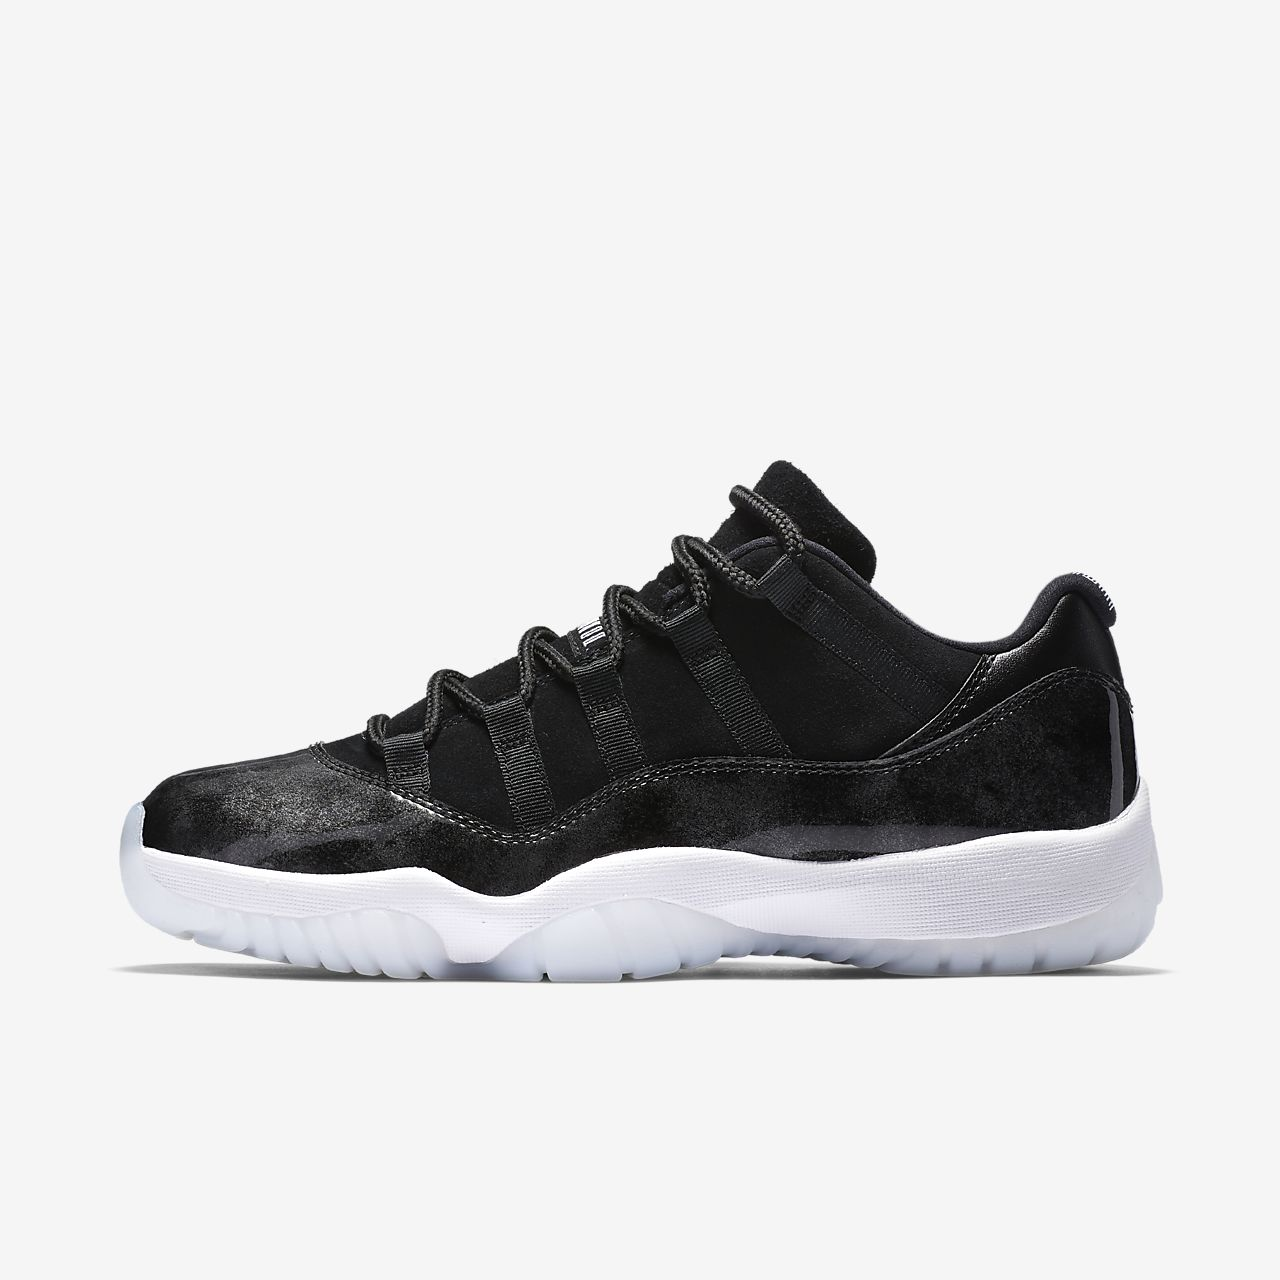 4e998de185f4f2 Air Jordan 11 Retro Low Men s Shoe. Nike.com ID